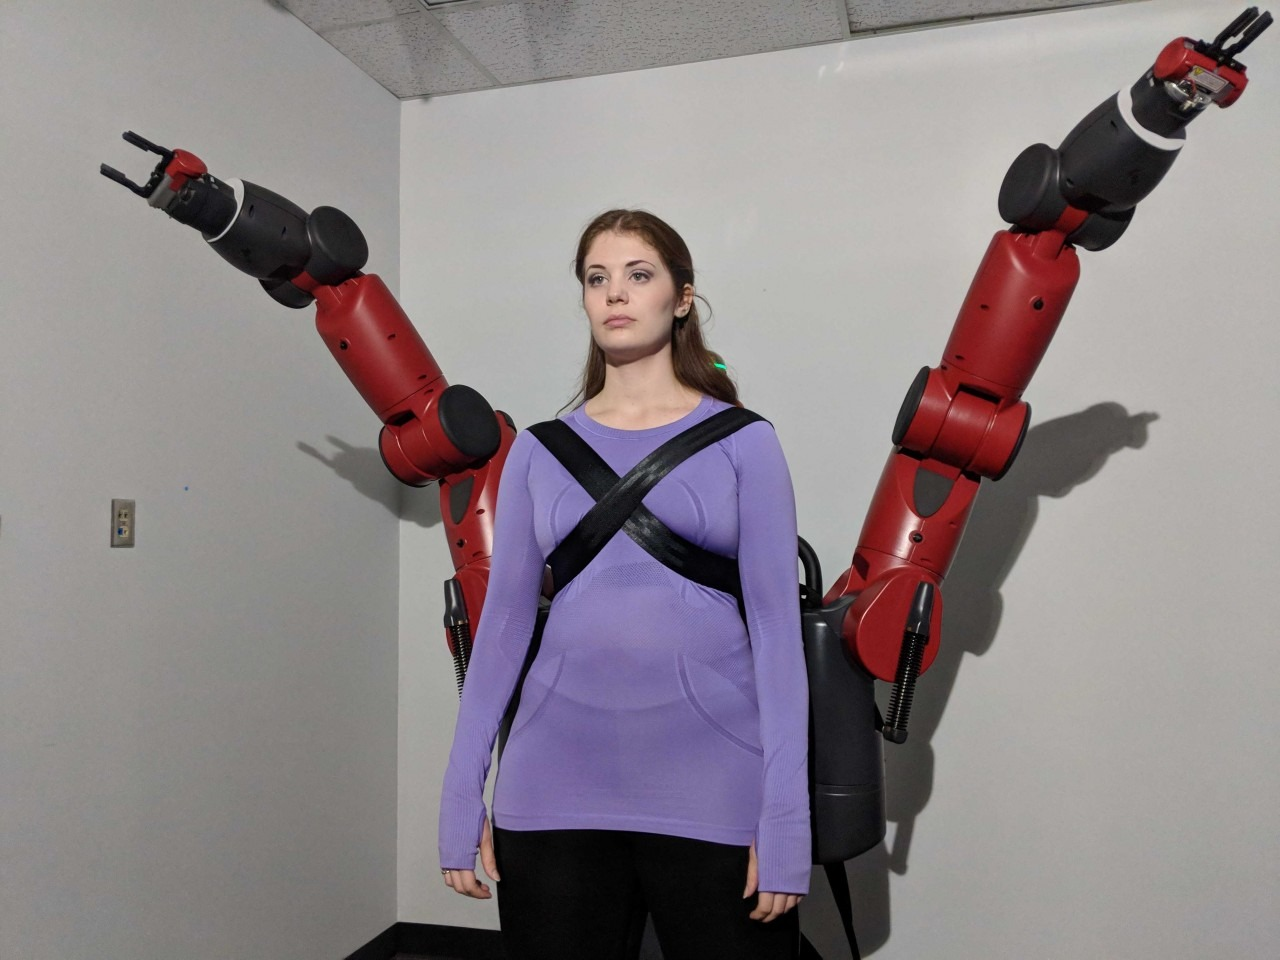 Ac actor performing as a cyborg with additional arms